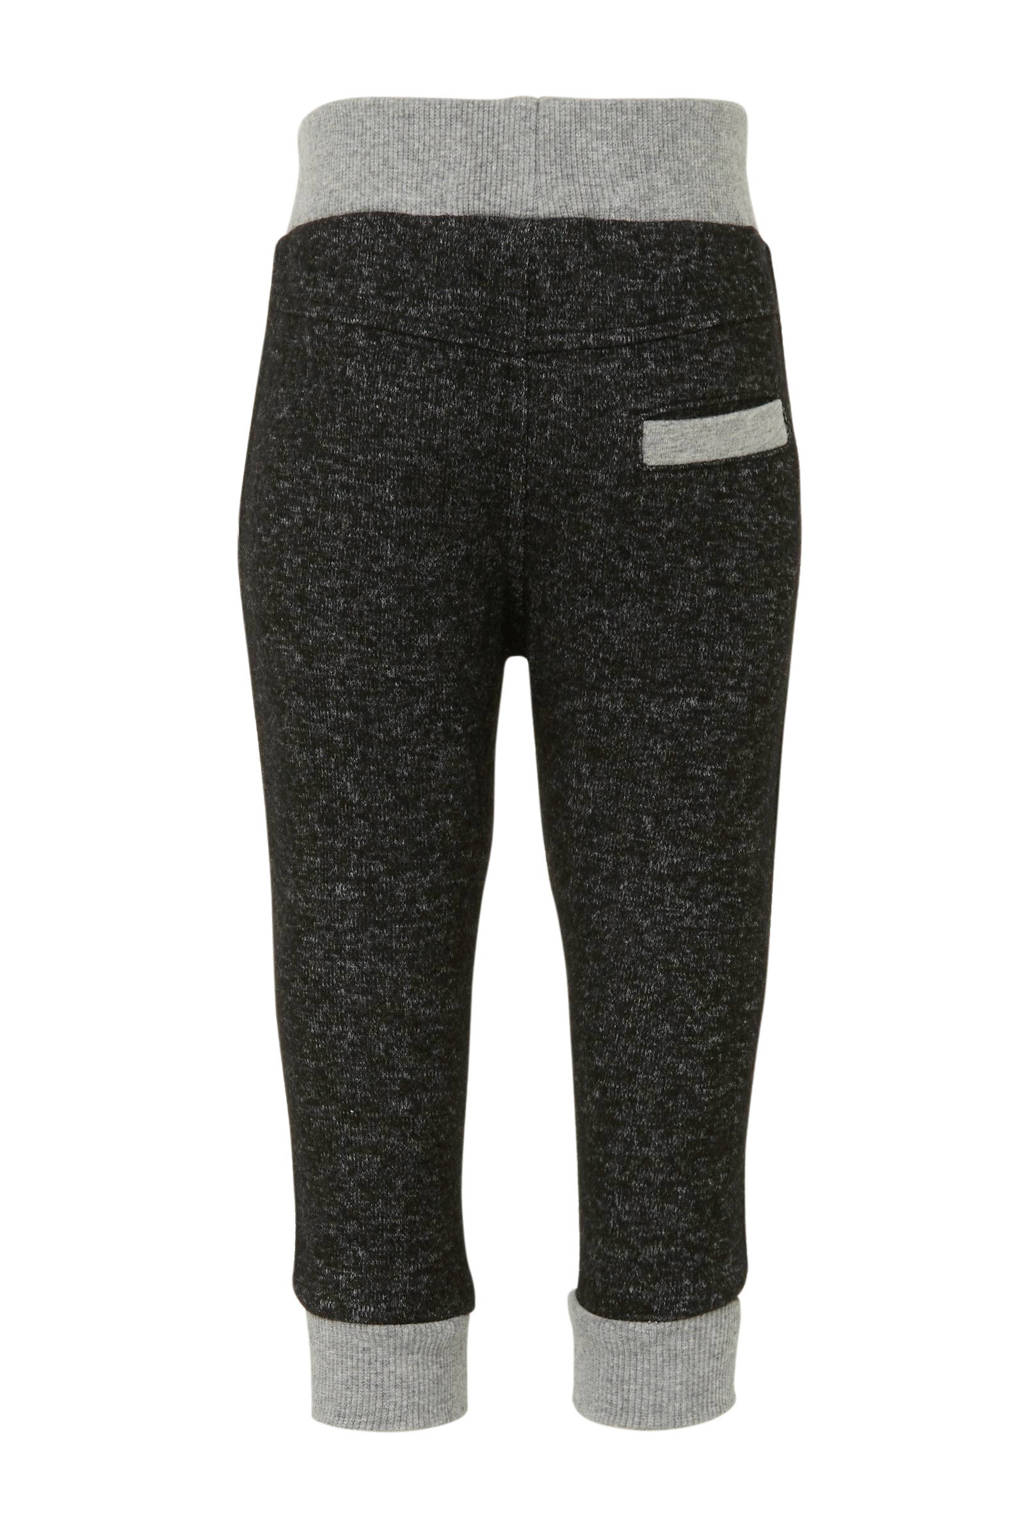 Koko Noko   regular fit joggingbroek met zijstreep zwart, Zwart